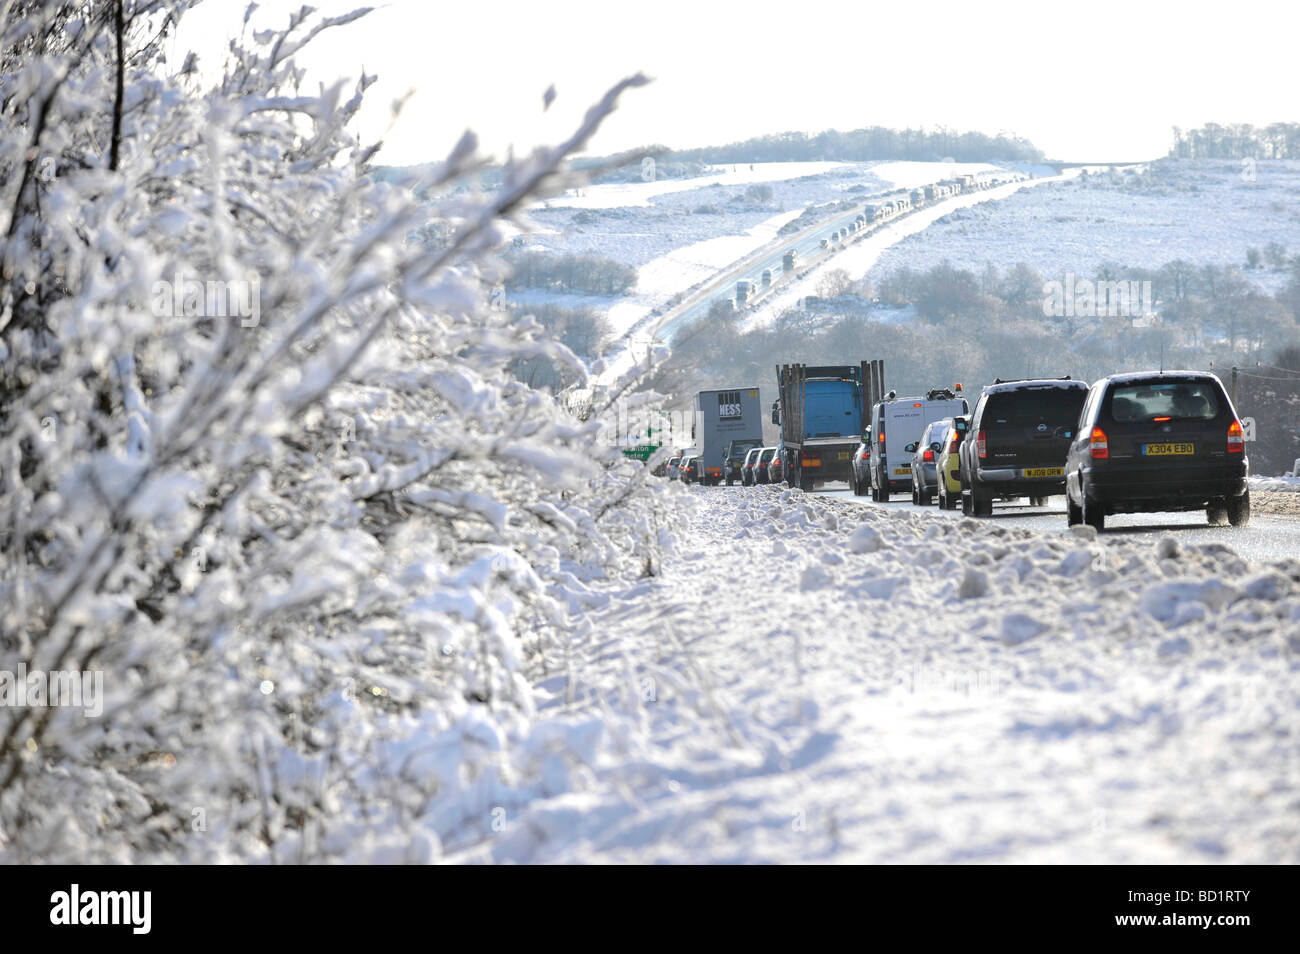 winter snow and bad weather causes traffic chaos on the A361 between Tiverton and Barnstaple, Devon, uk - Stock Image